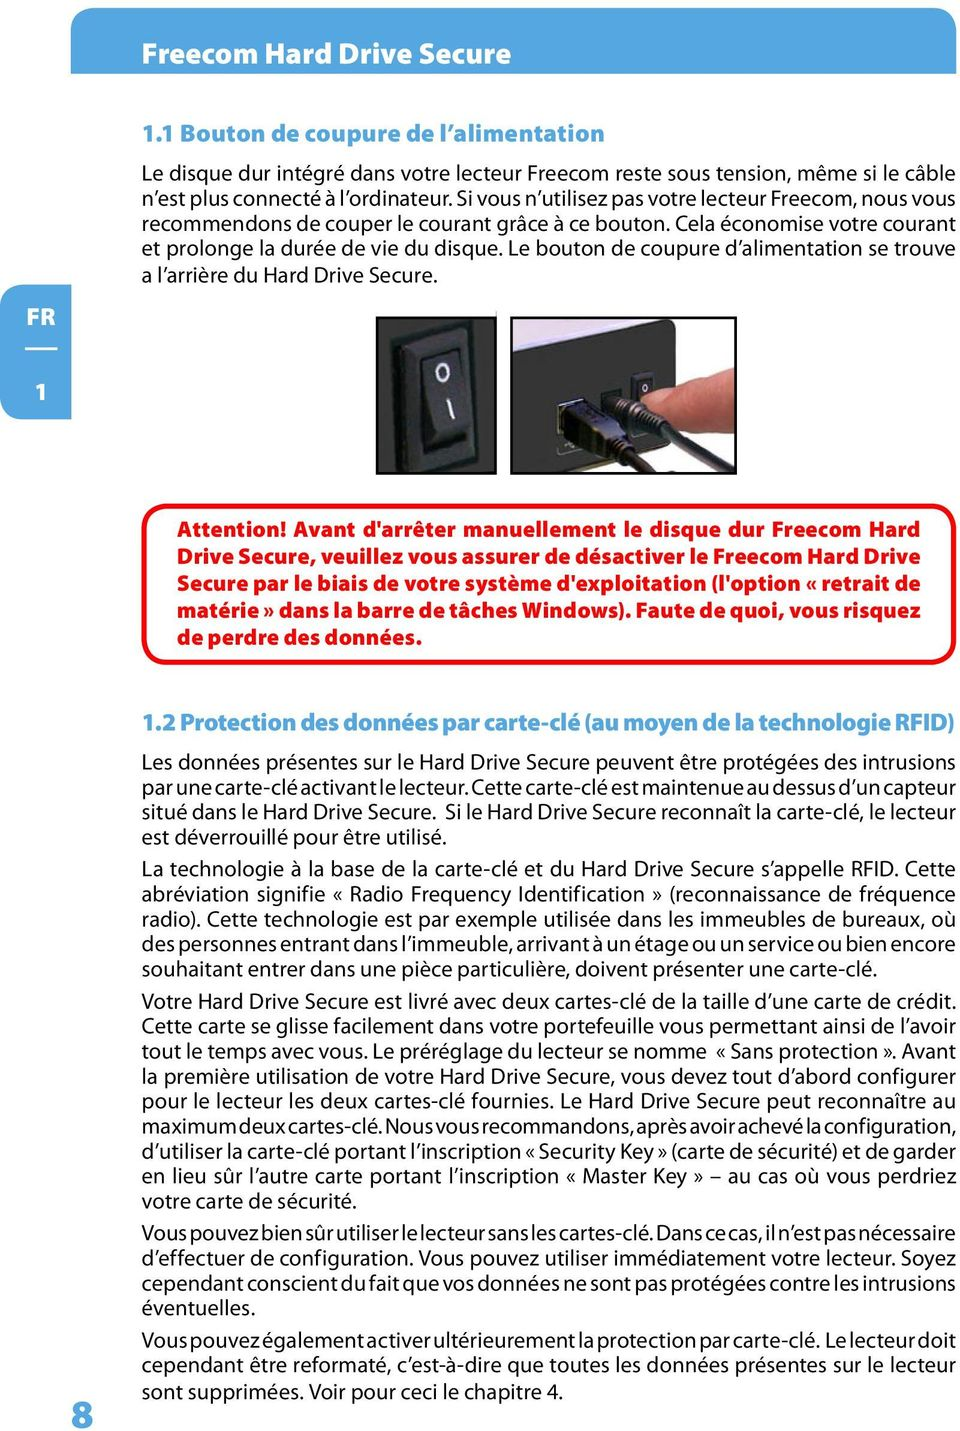 Le bouton de coupure d alimentation se trouve a l arrière du Hard Drive Secure. 1 Attention!